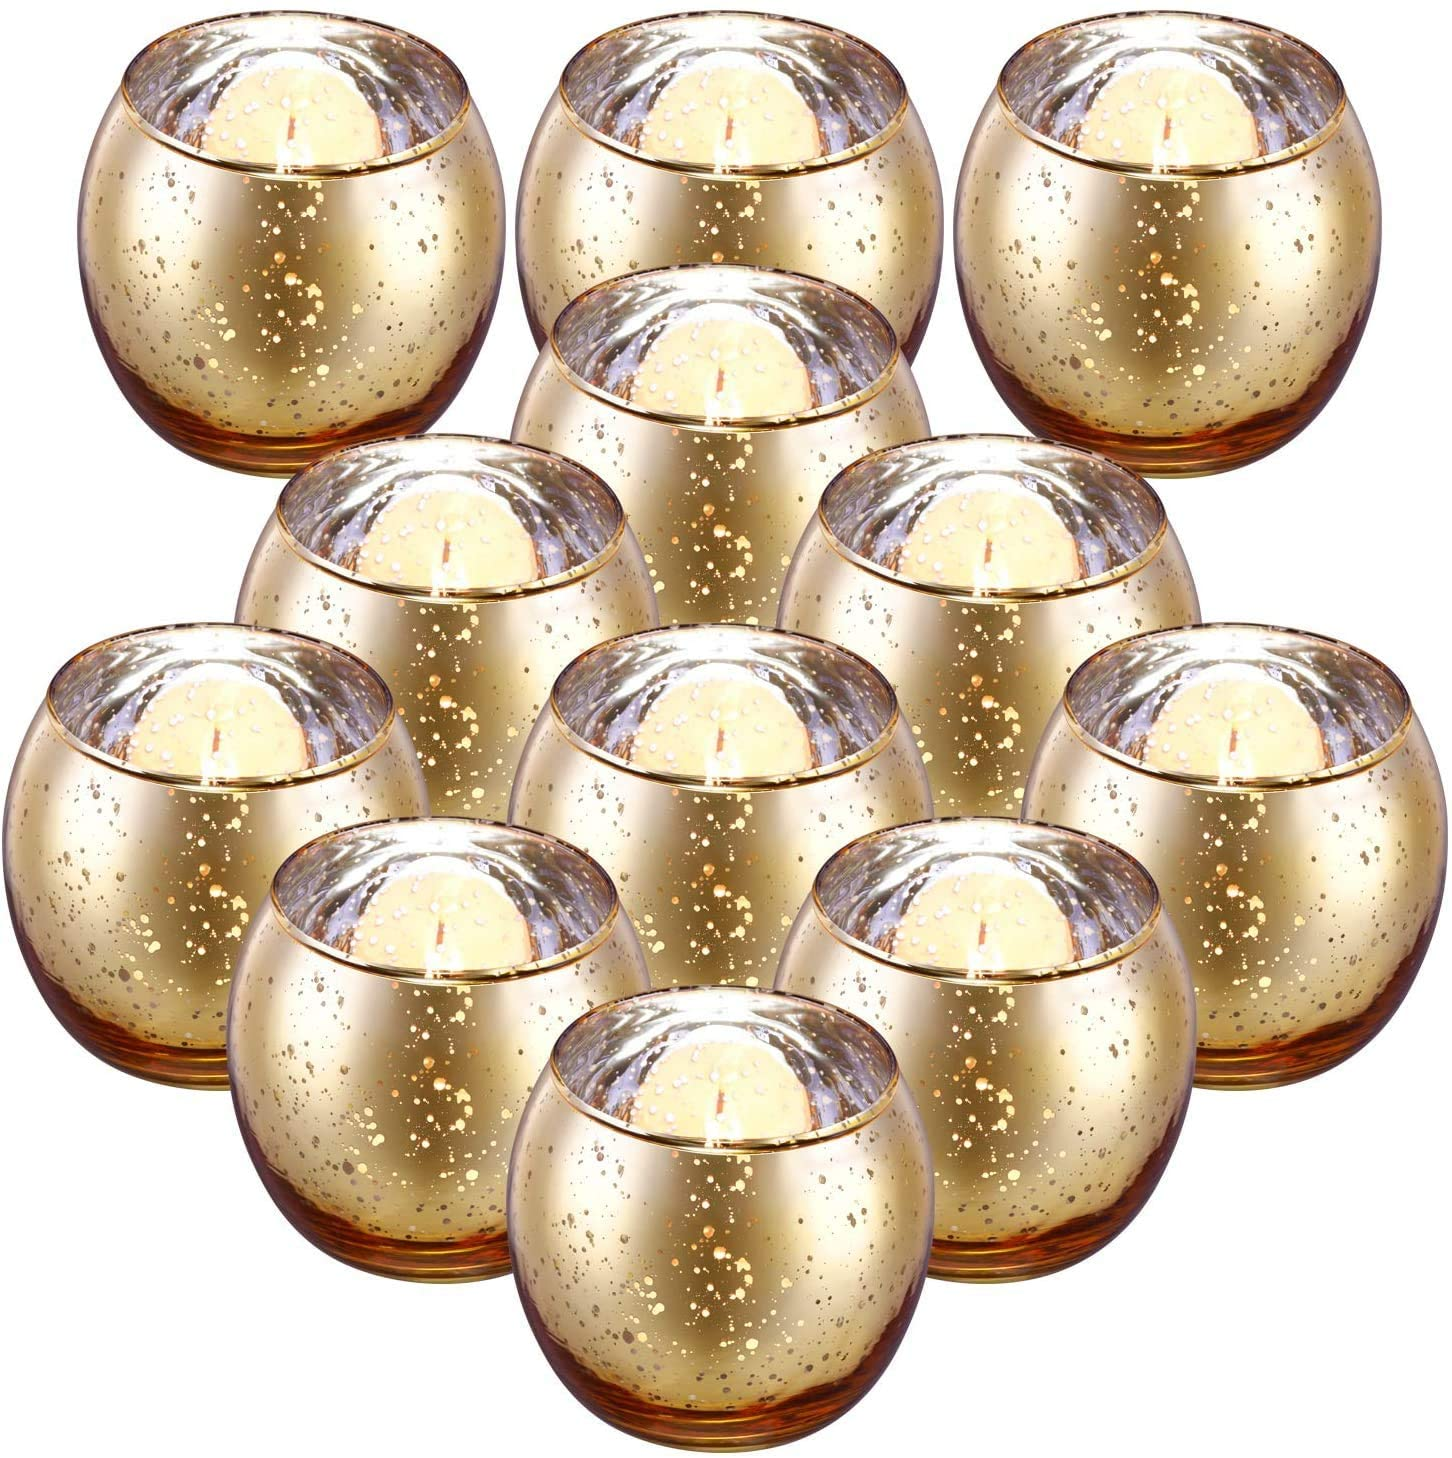 Gold Bowl Votive Tealight Candle Holder Bulk - Set of 12 Speckled Mercury Gold Candle Holders for Table Centerpieces, Wedding Decorations, Thanksgiving Decorations, Christmas Decoration (gold)